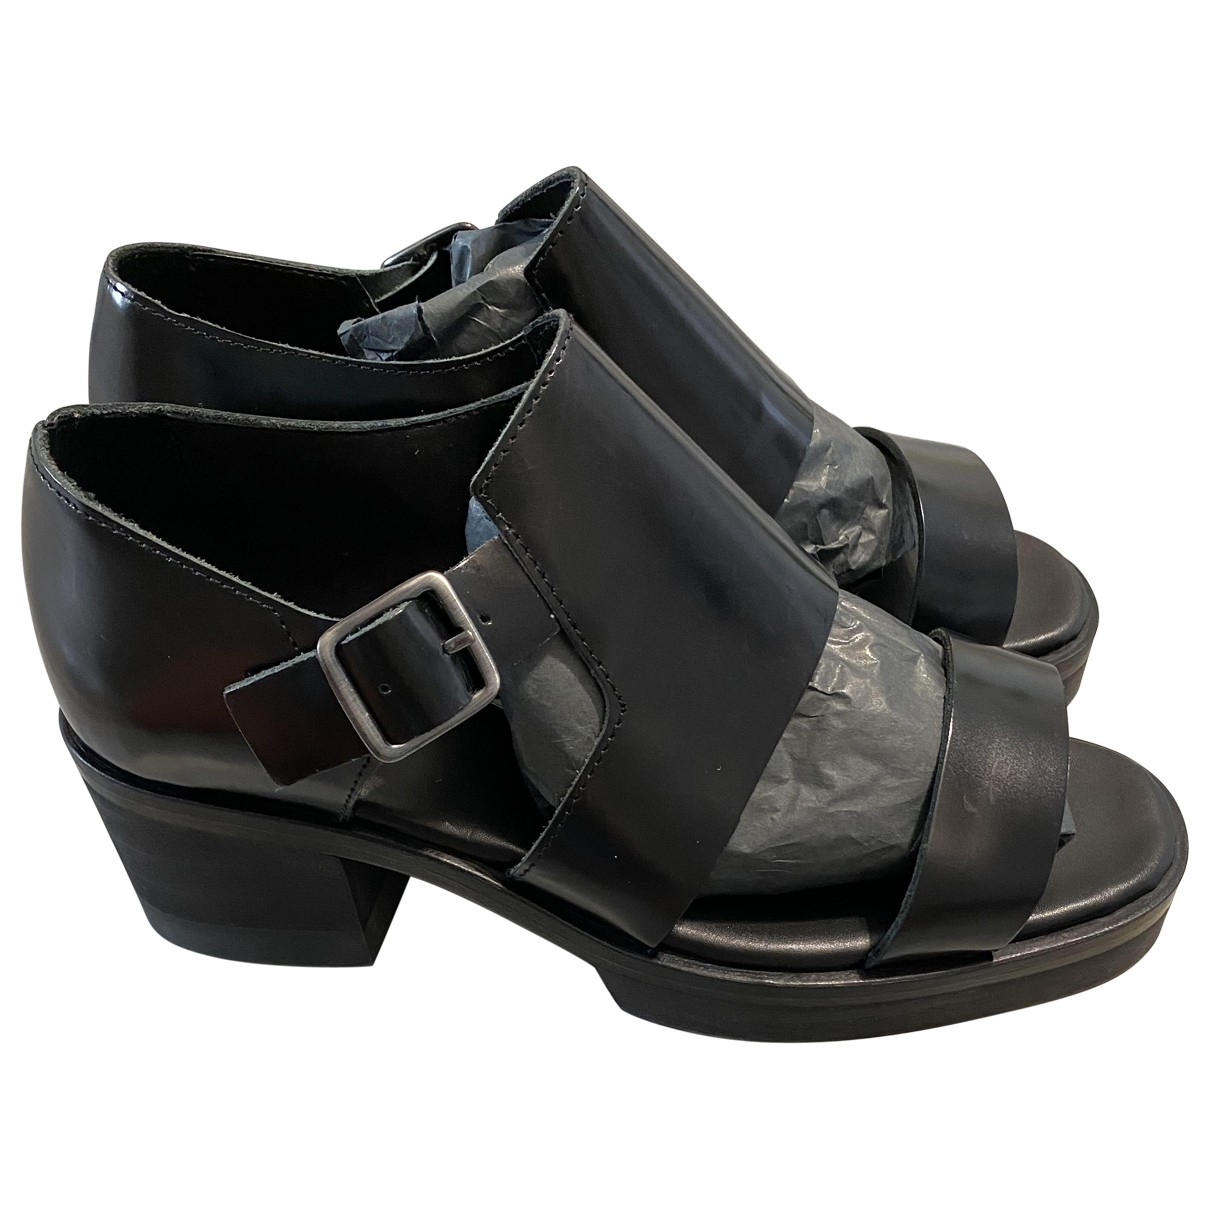 Cos \N Black Leather Sandals for Women 38 EU